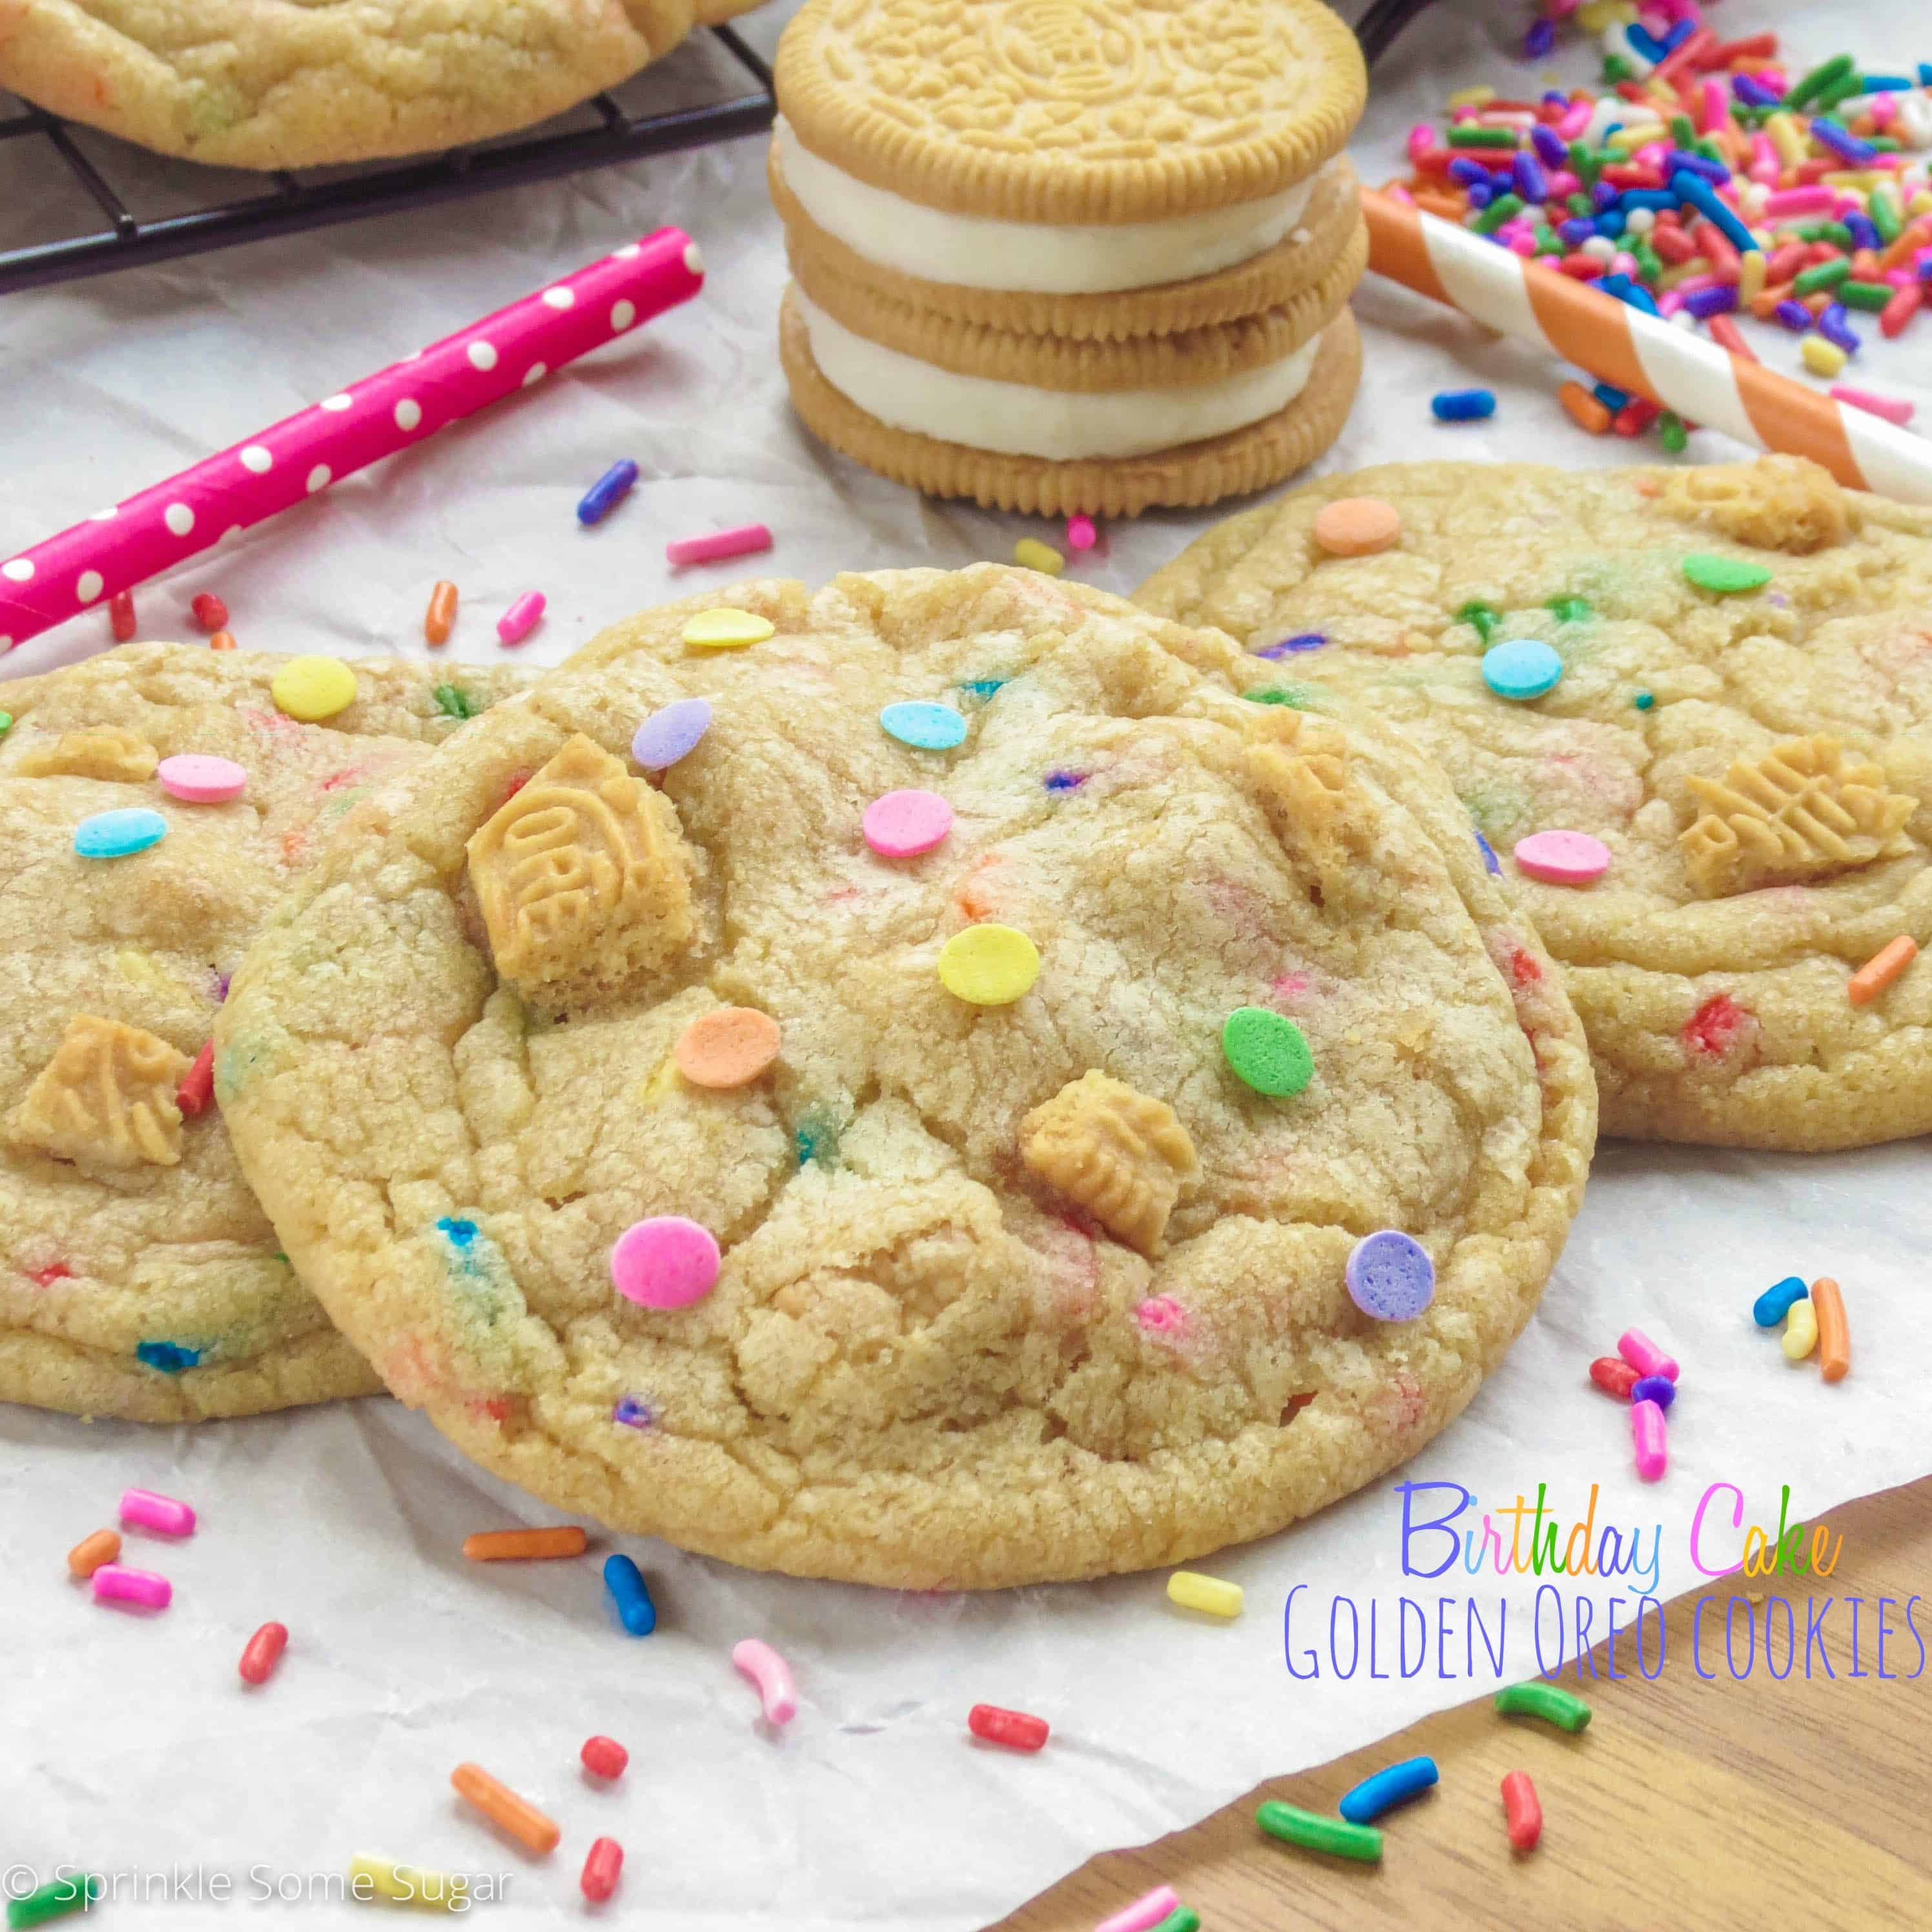 Excellent Birthday Cake Golden Oreo Cookies Sprinkle Some Sugar Funny Birthday Cards Online Overcheapnameinfo